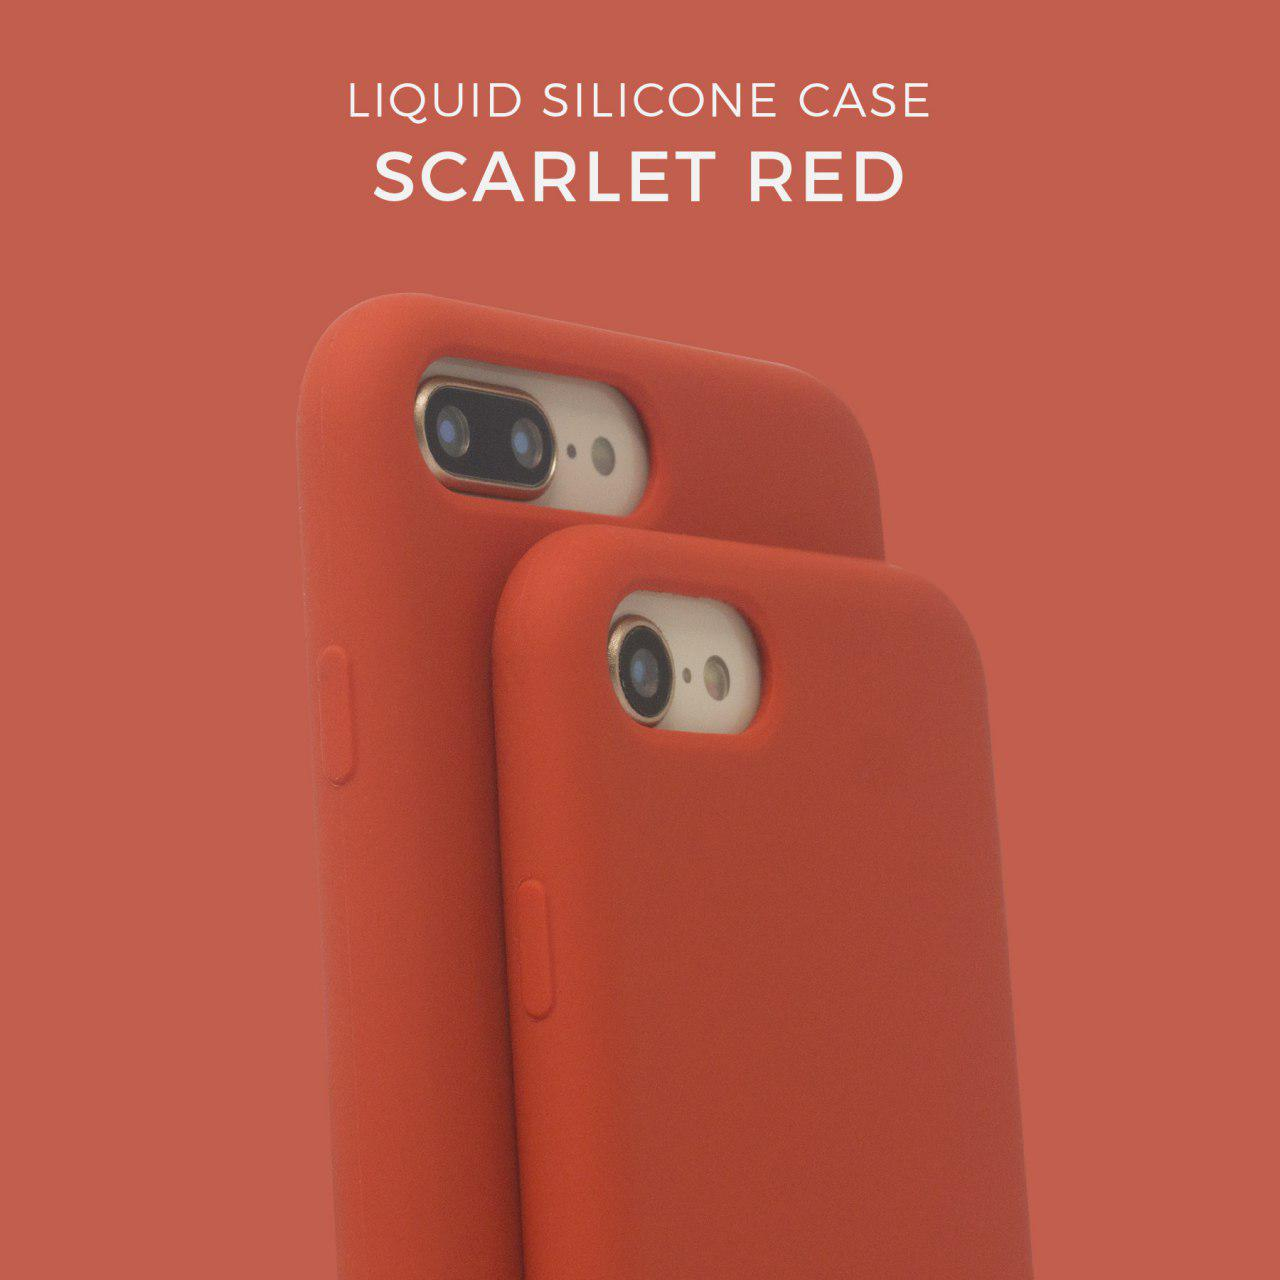 Liquid Silicone case - Scarlet Red